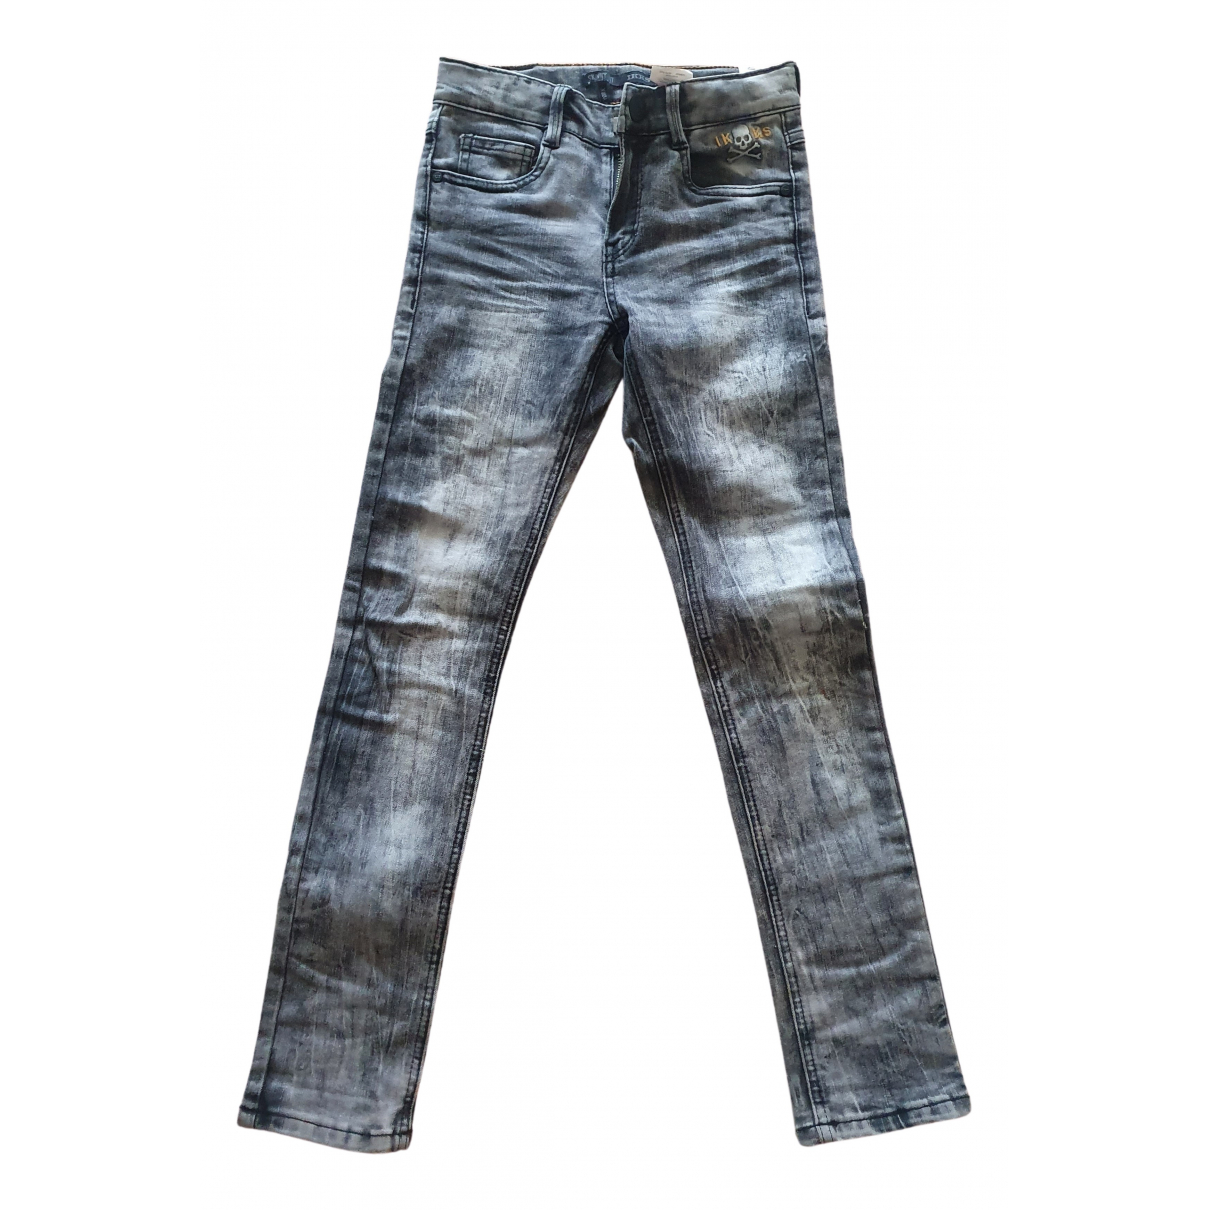 Ikks N Grey Cotton Trousers for Kids 10 years - up to 142cm FR